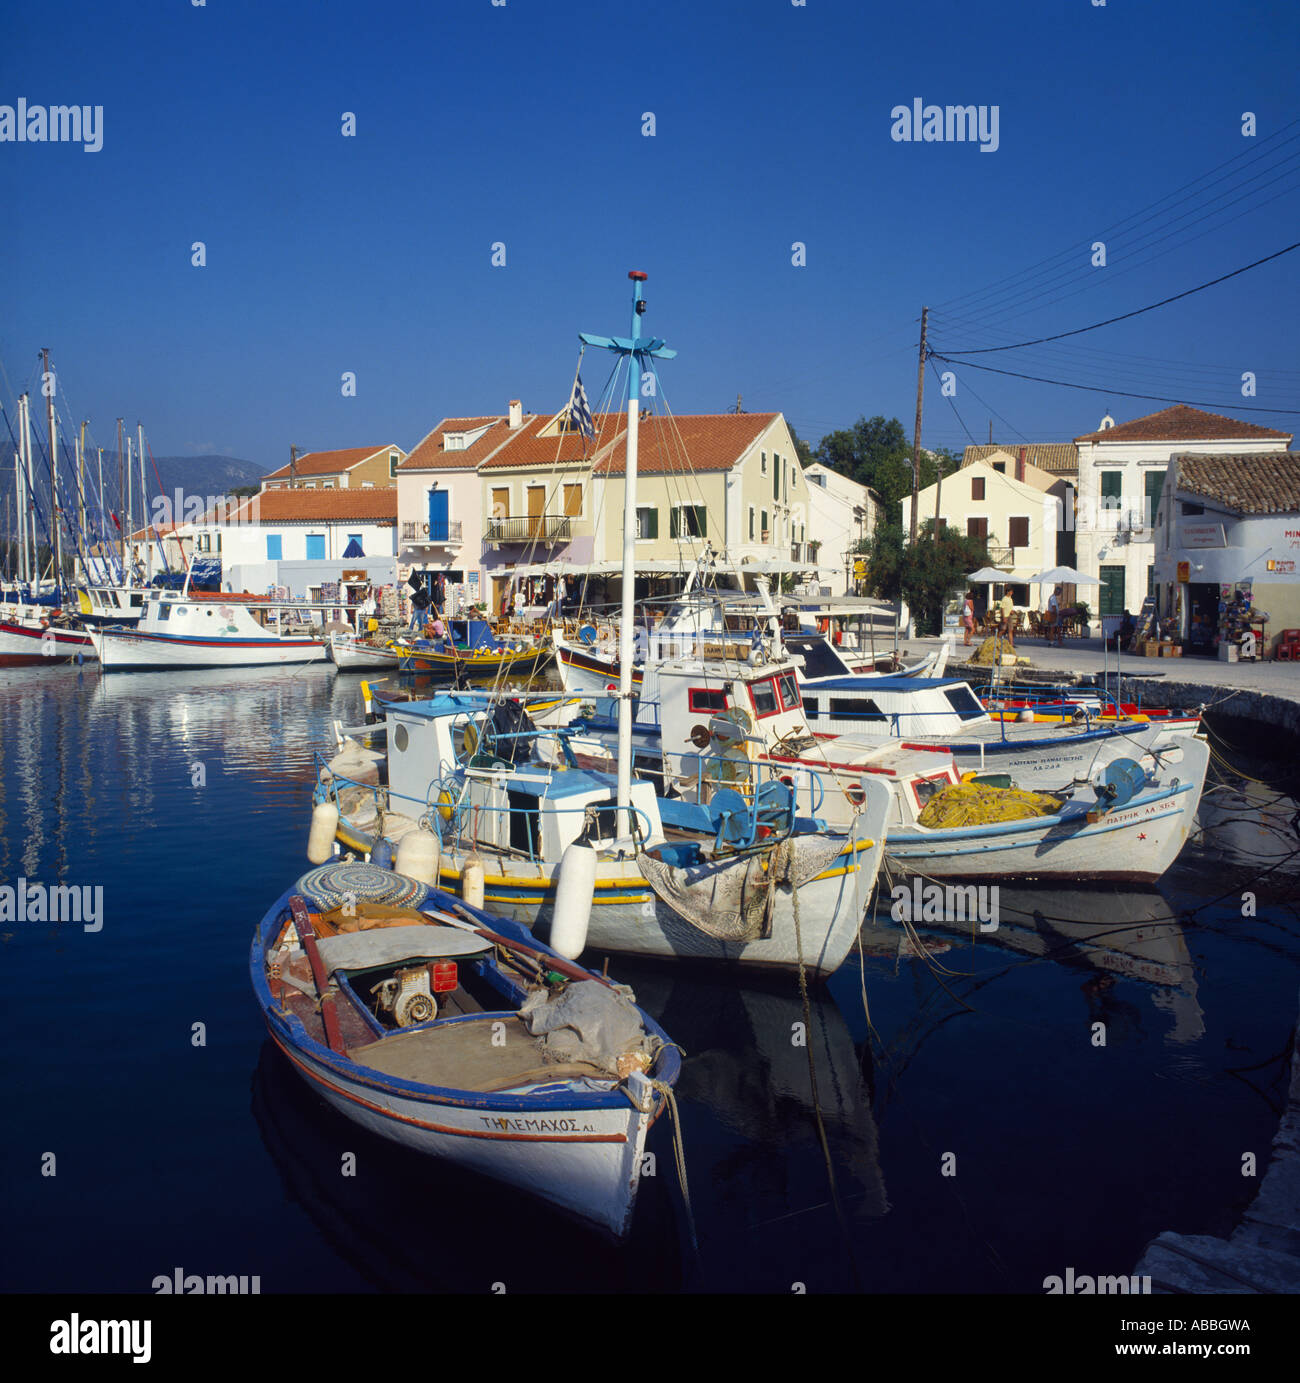 Fishing boats moored in harbour with cafes shops and houses on quayside Fiscardo Cephalonia Island Greek Islands Greece - Stock Image